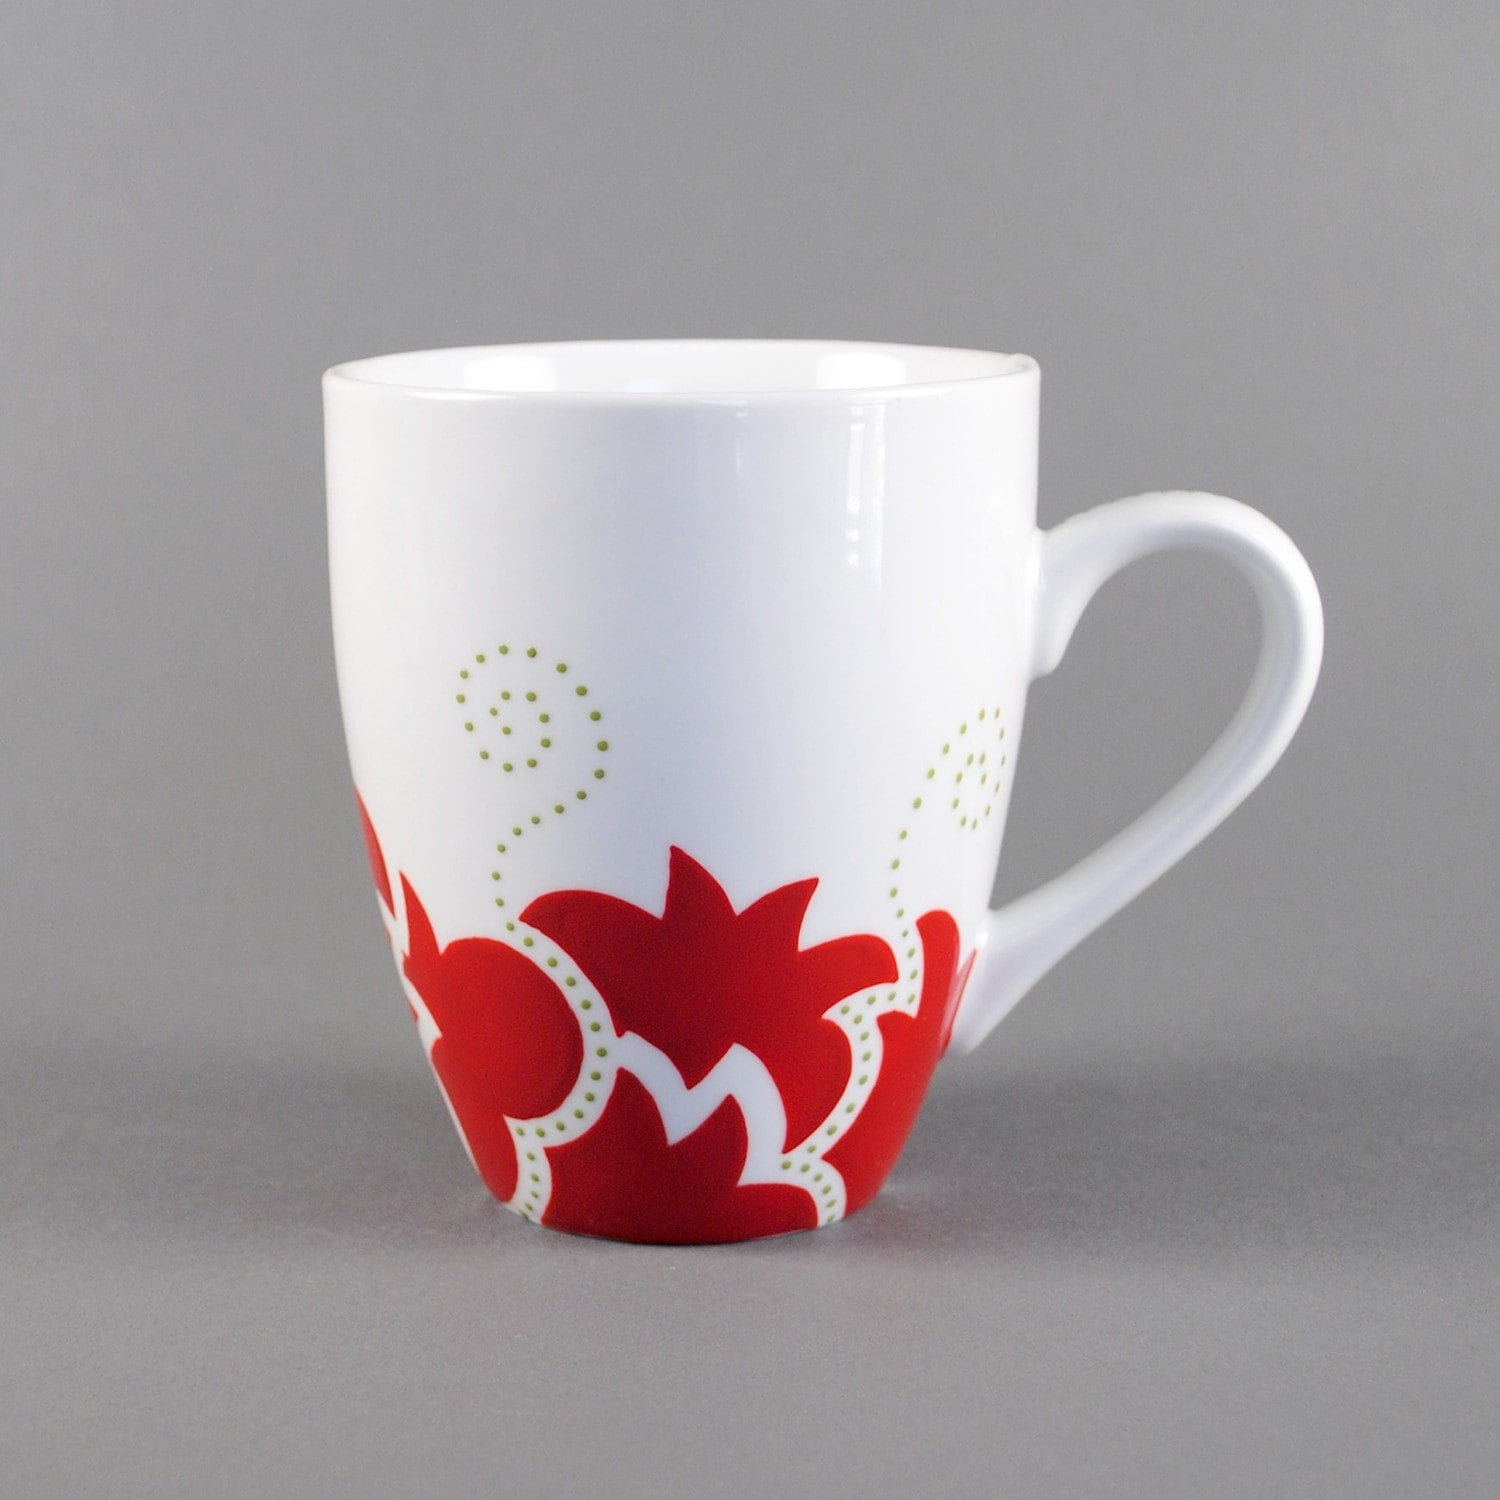 28 coffee cup design ideas how to decorate a coffee mug using a porcelain marker 1000